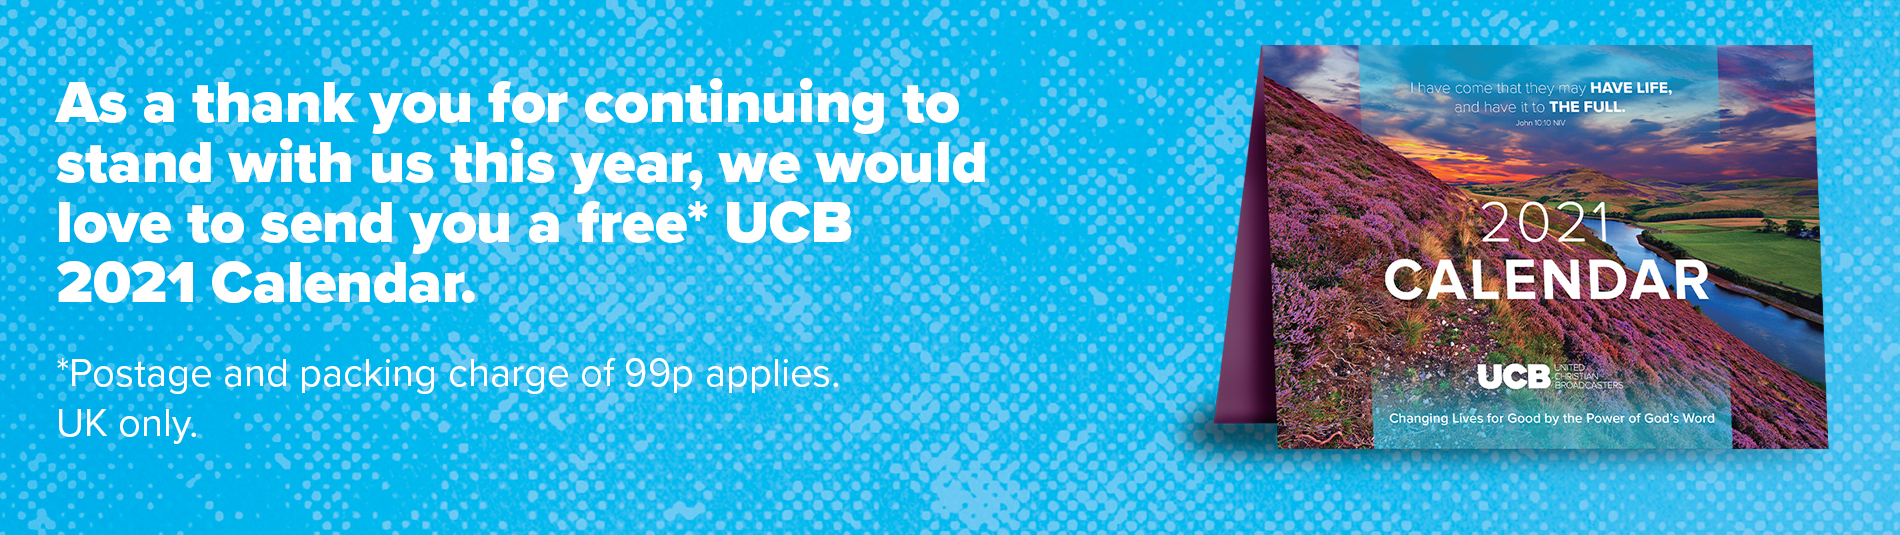 As a thank you for continuing to stand with us this year, we would love to send you a free* UCB 2021 Calendar.